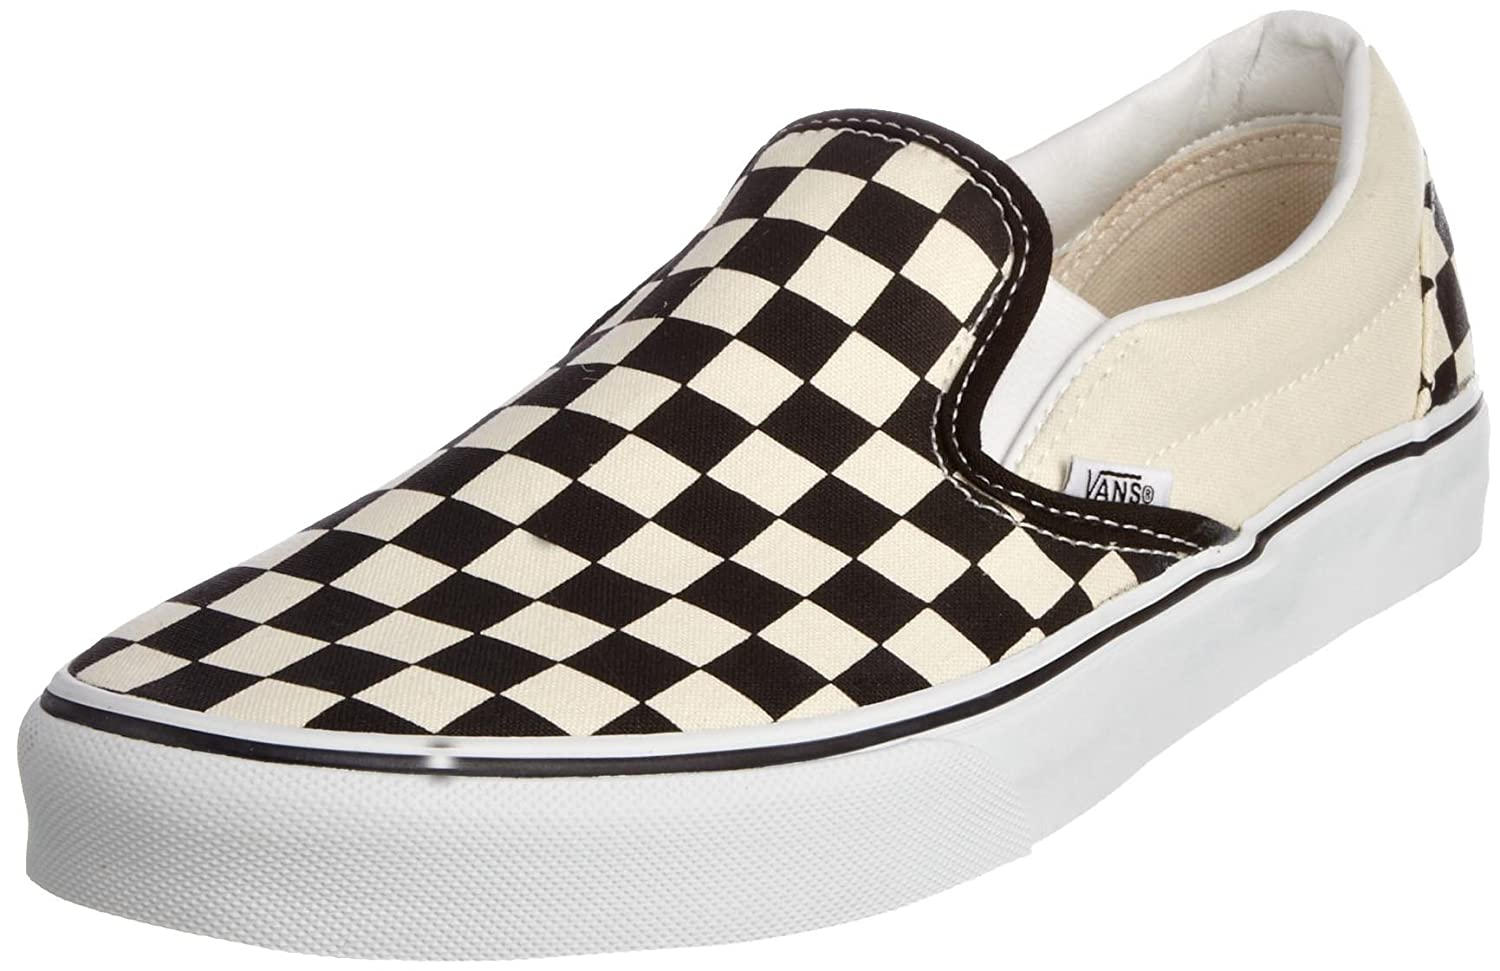 Мужские модные кросовки Vans Unisex VANS CLASSIC SLIP-ON SKATE SHOES